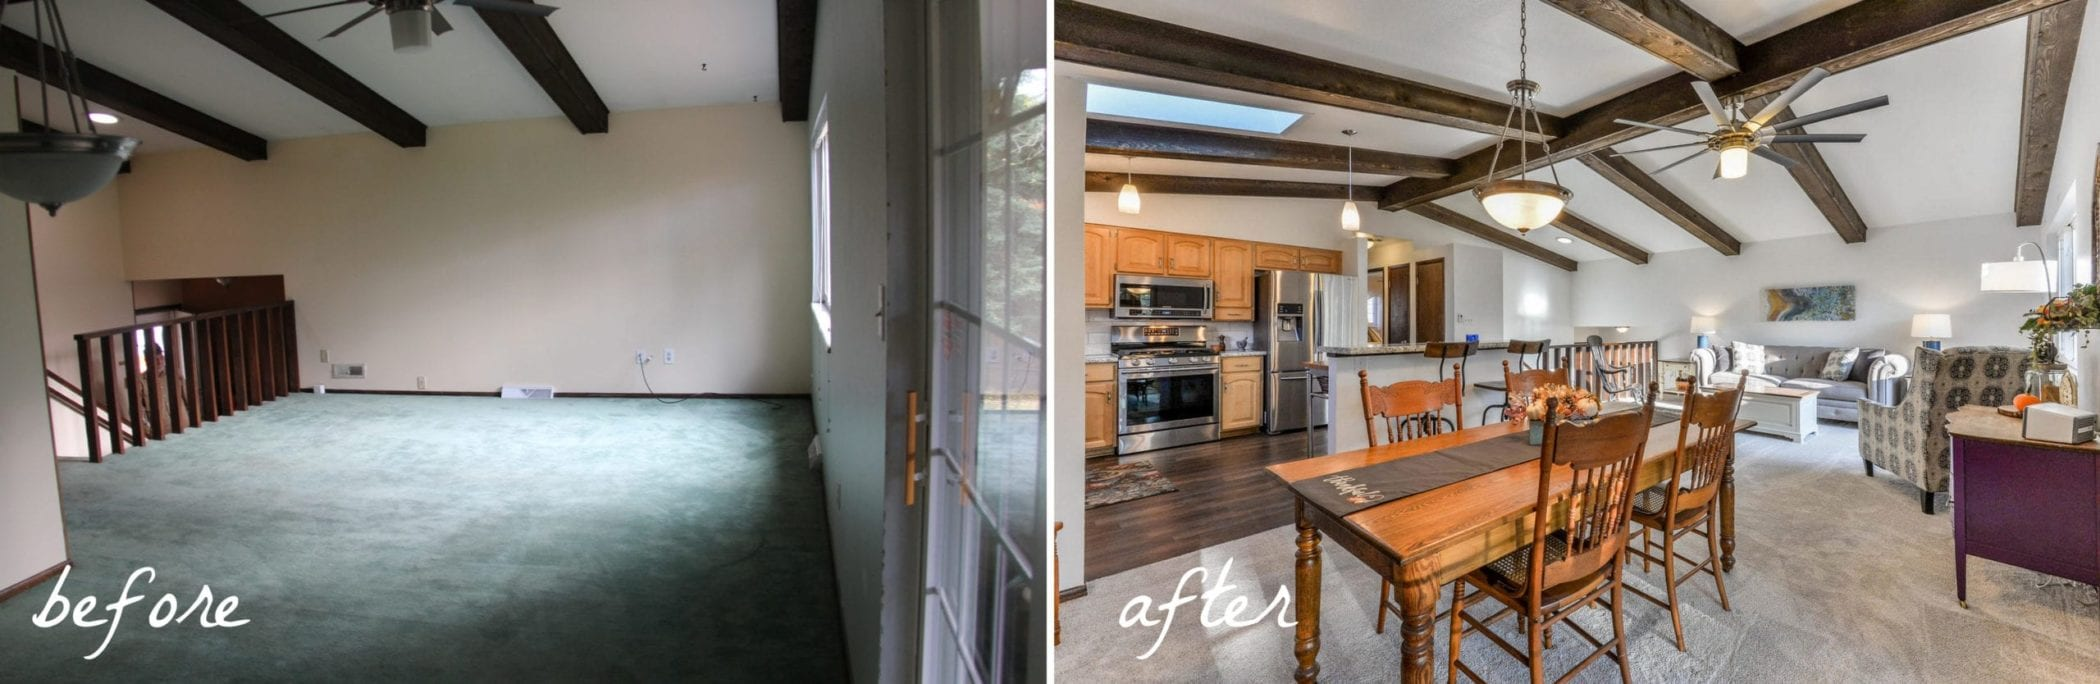 Bi-level renovation before and after